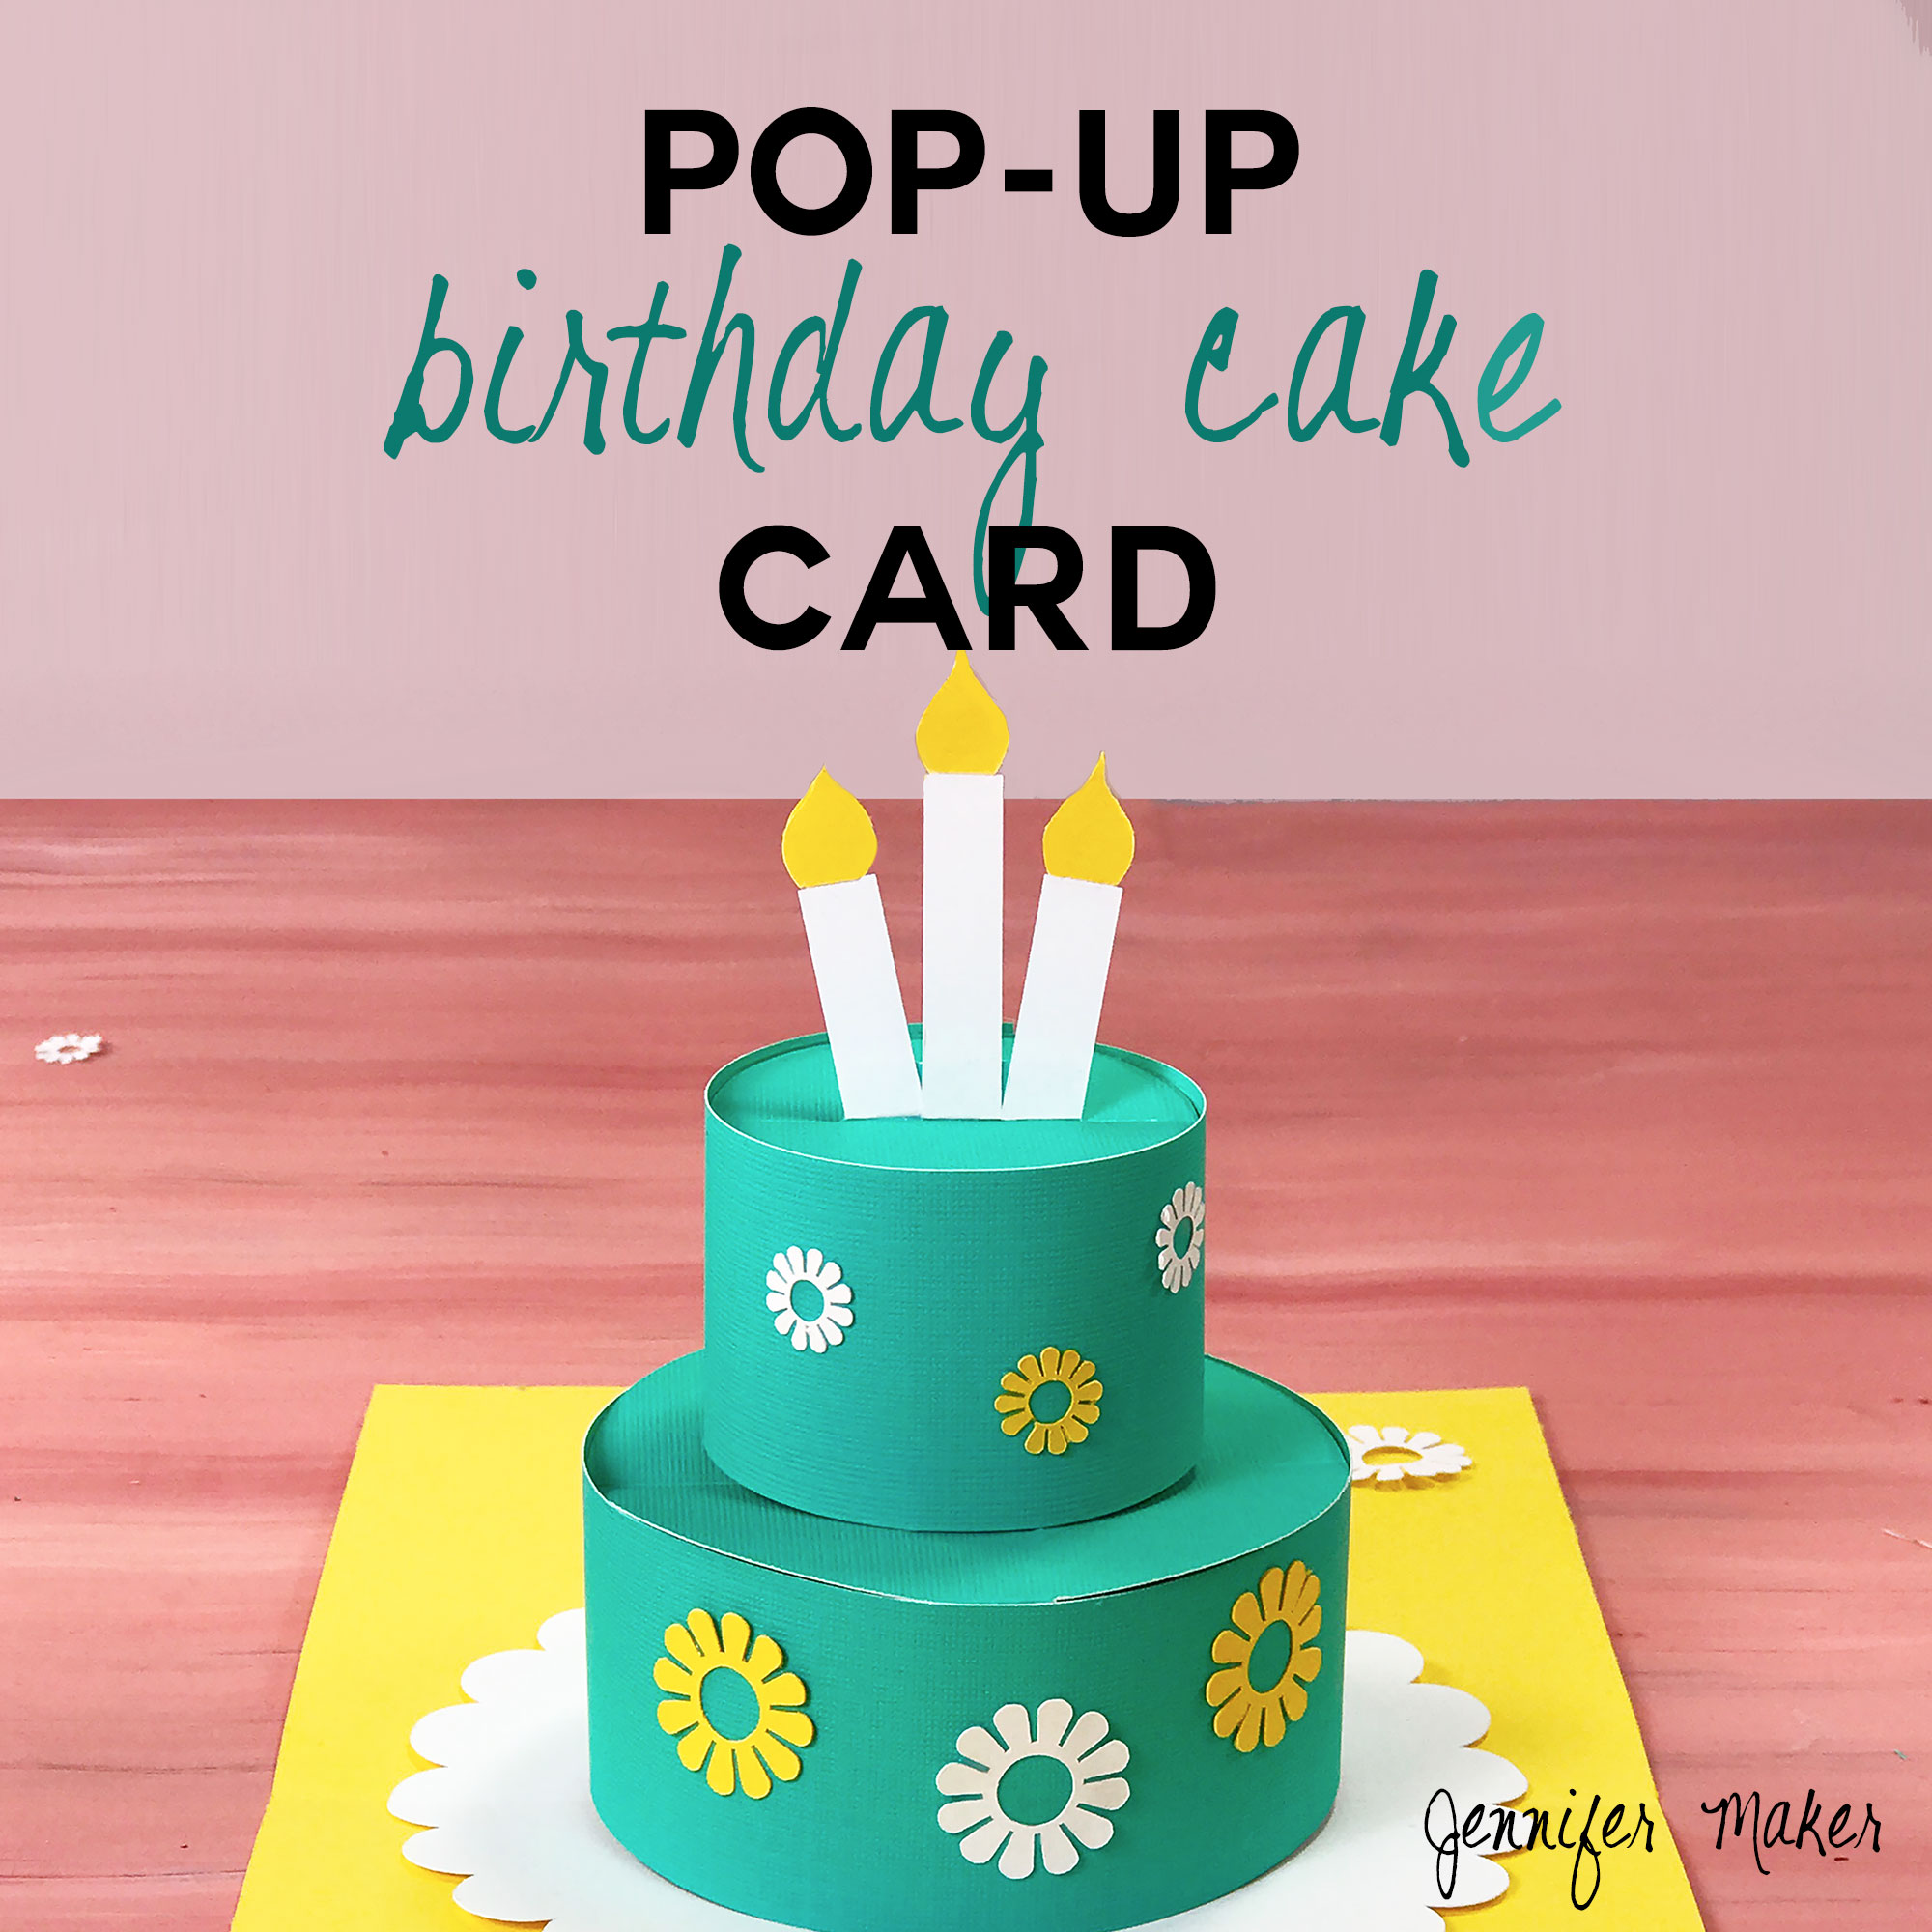 Birthday Cake Images Card : How to Make a Pop-Up Birthday Cake Card - Jennifer Maker